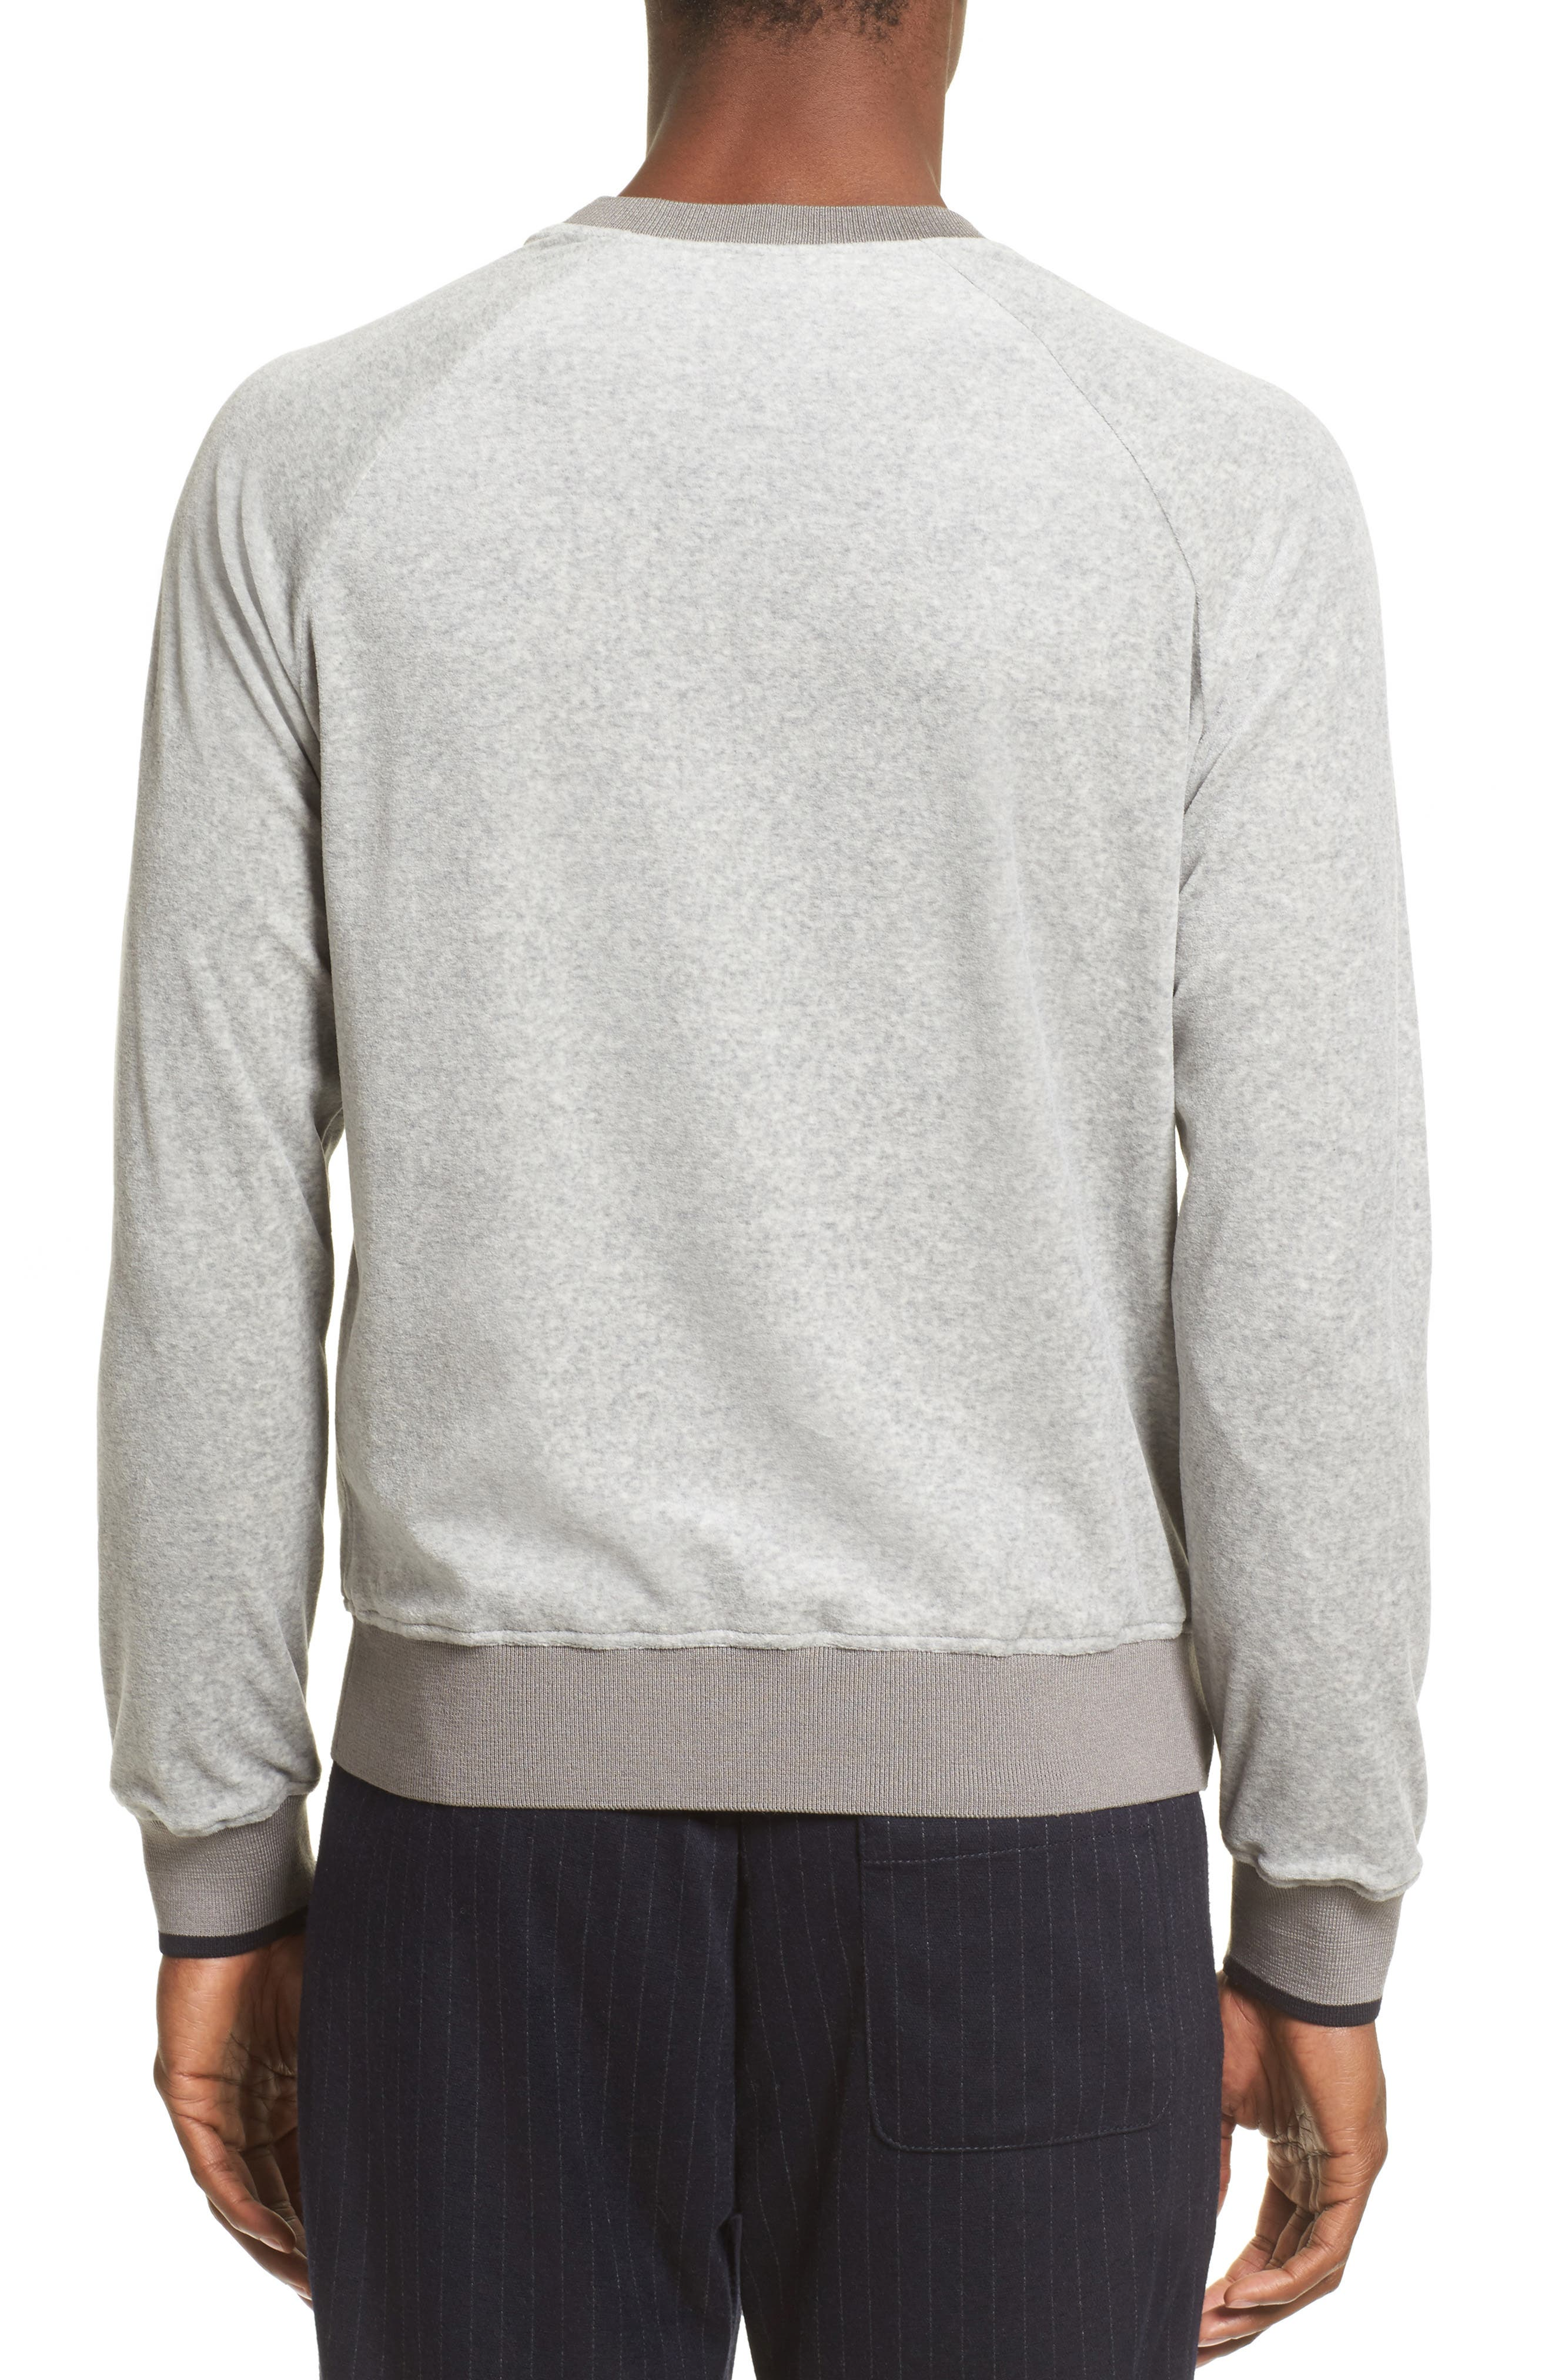 Velour Sweatshirt,                             Alternate thumbnail 2, color,                             Light Grey